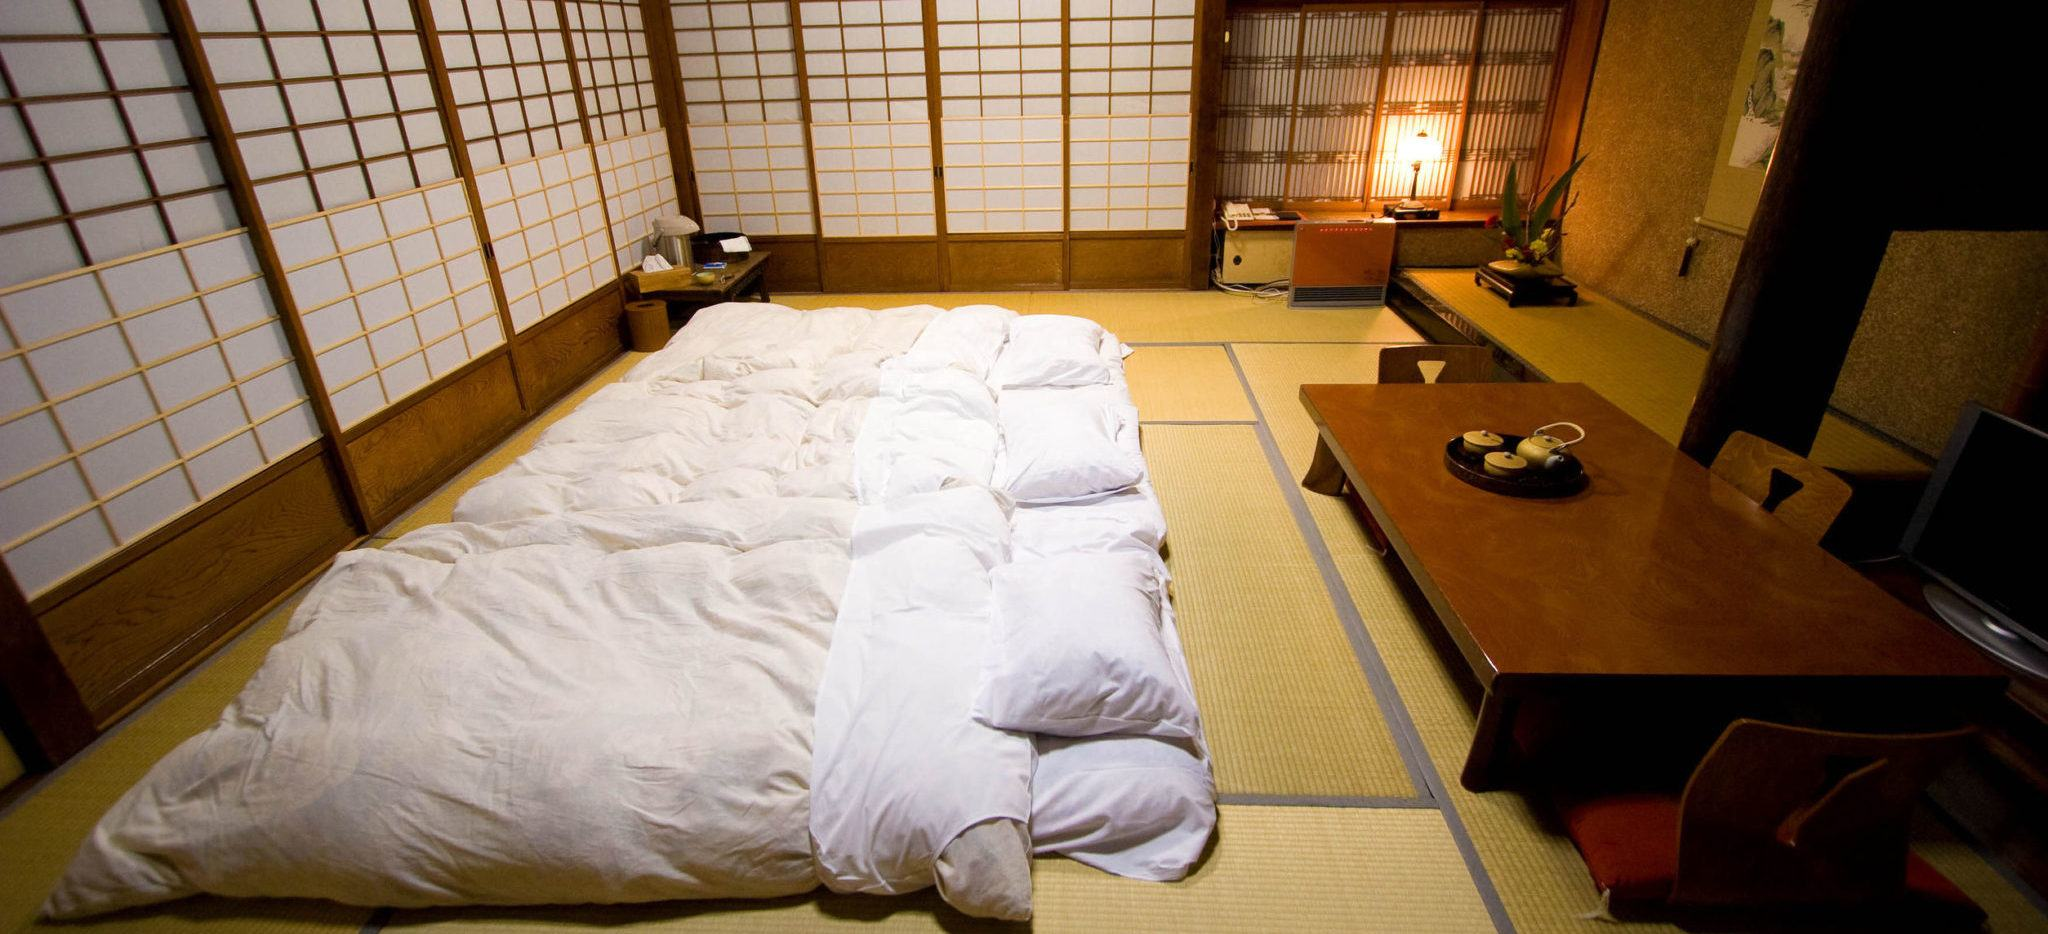 Futon Bed In Japan